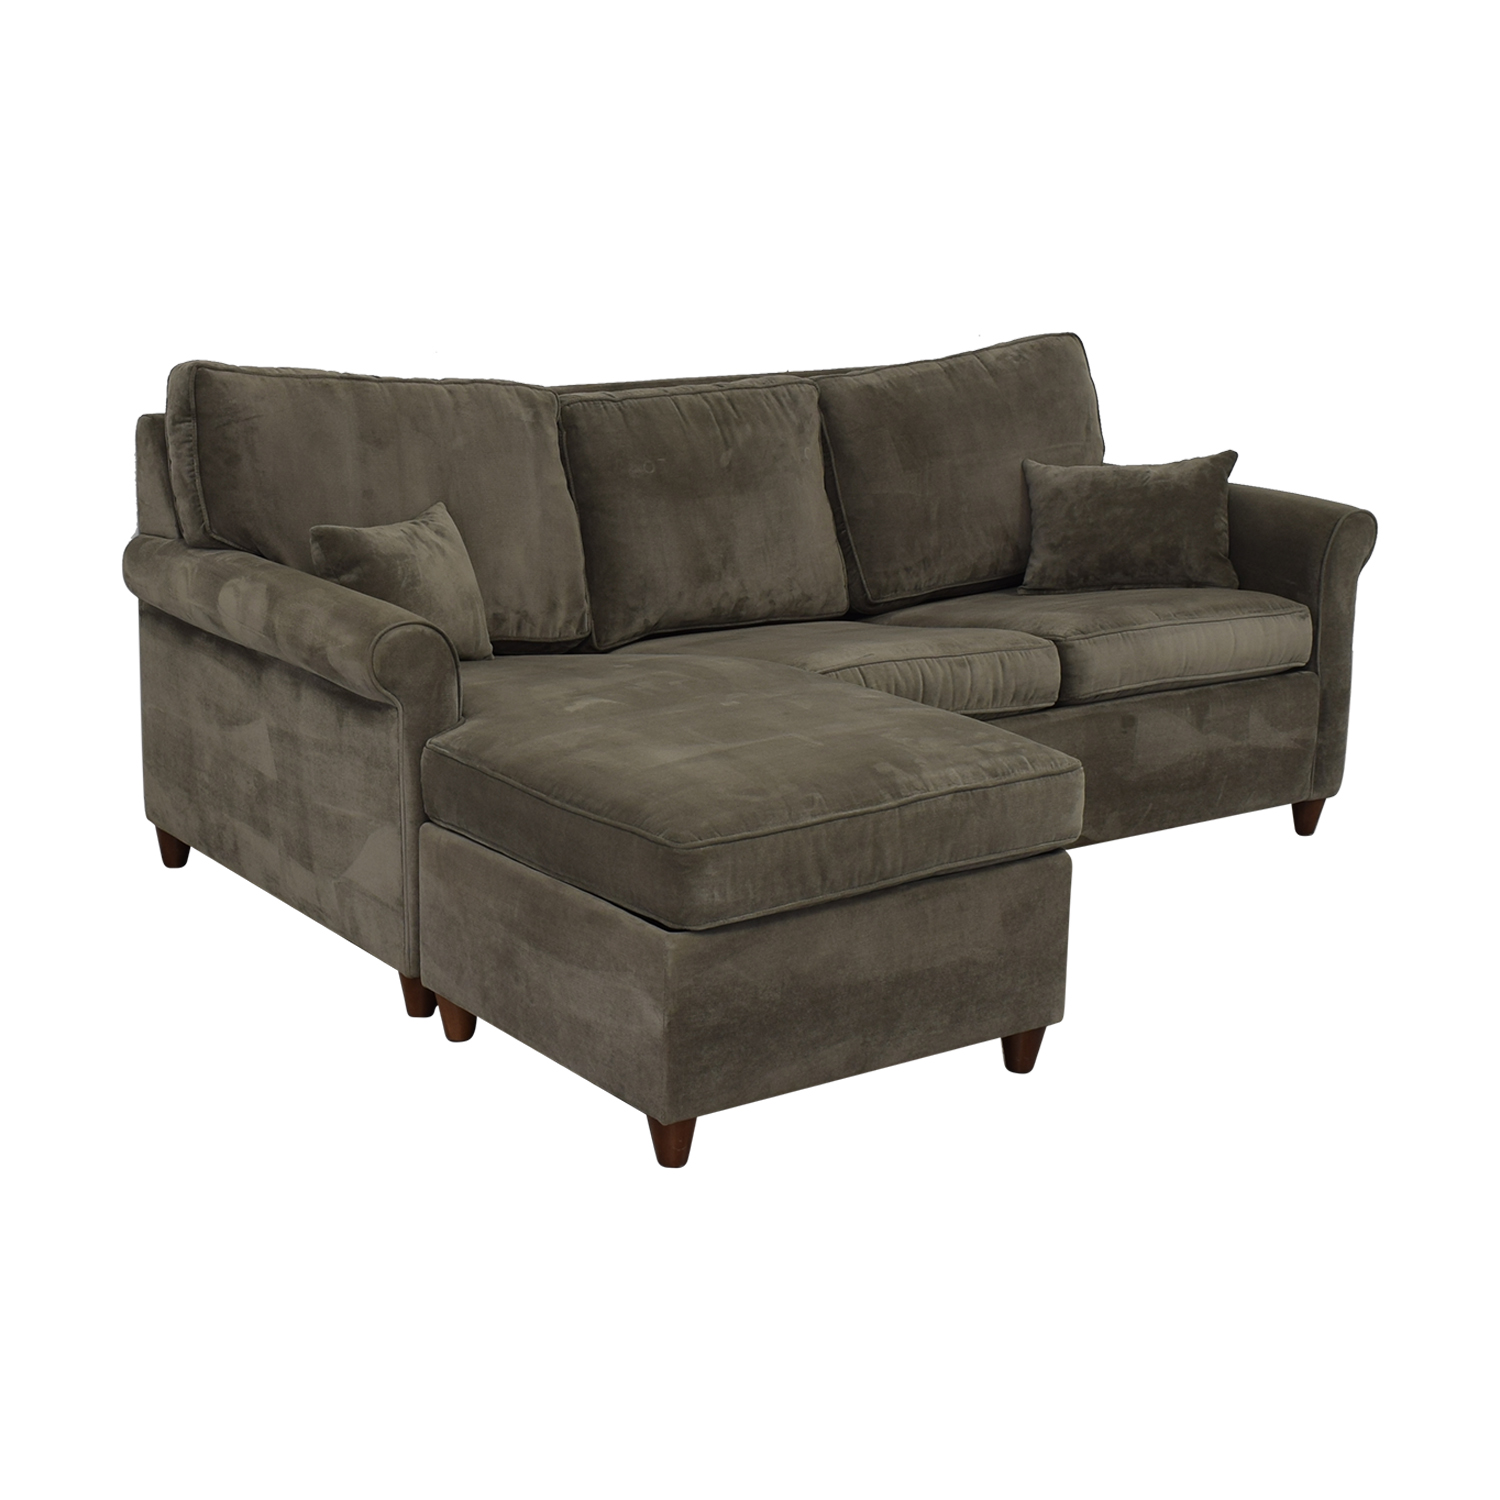 65% OFF - Macy\'s Macy\'s Lidia Chaise Sectional Queen Sleeper Sofa / Sofas